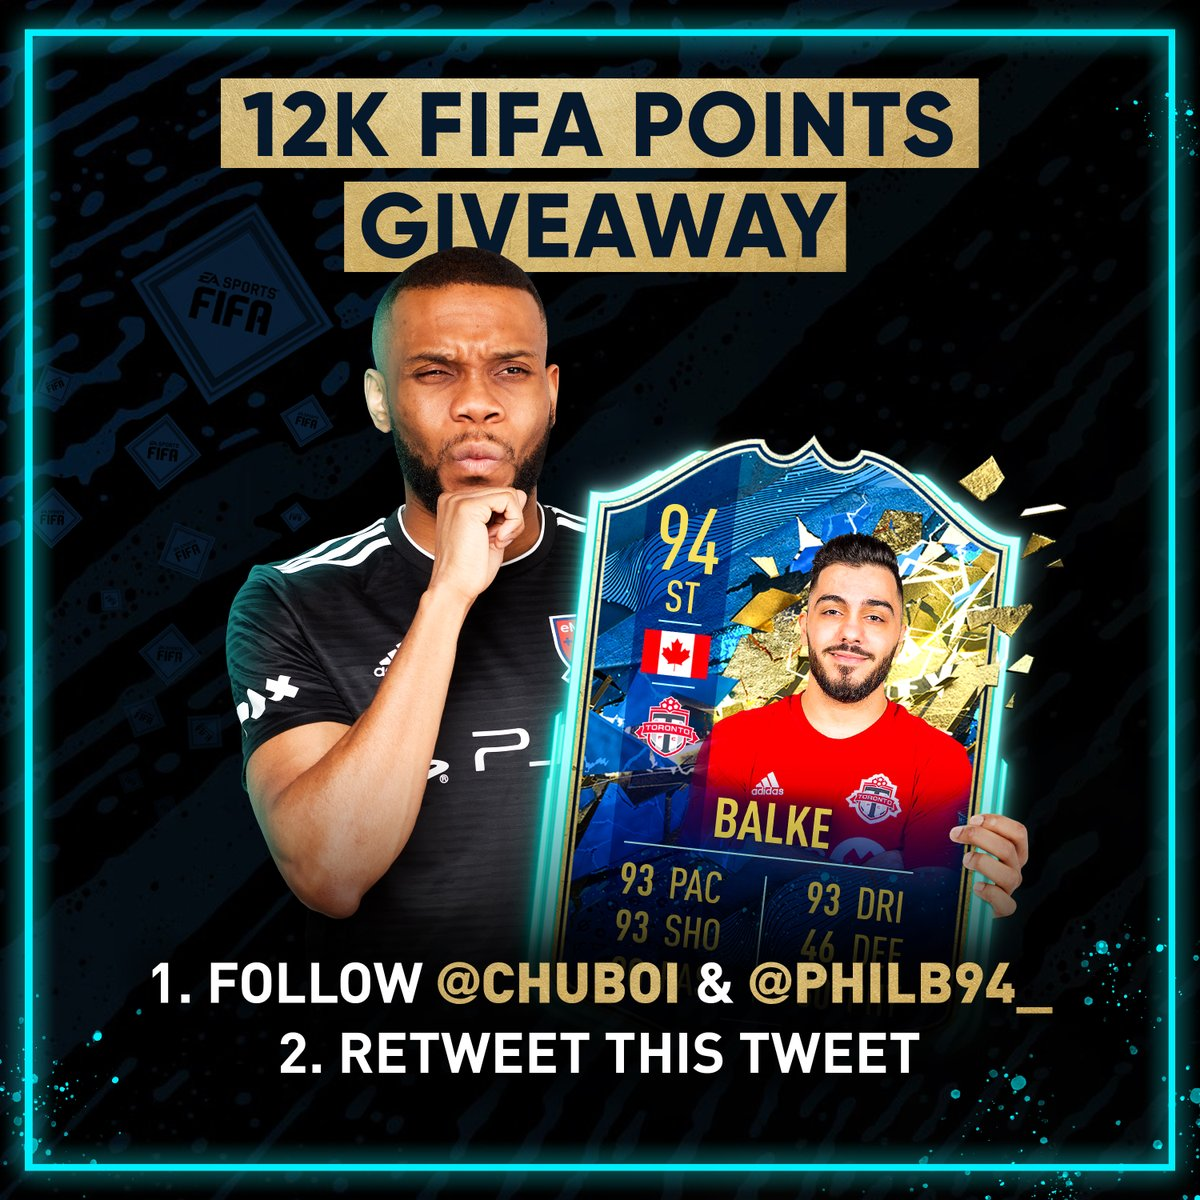 💰 12K FIFA POINT GIVEAWAY! 💰  RETWEET this tweet & FOLLOW myself & @PhilB94_ for a chance to win! 👍🏾  Winner picked Sun May 3rd. ⏰  GOOD LUCK! 👊🏾 https://t.co/R7B4oP1NYy